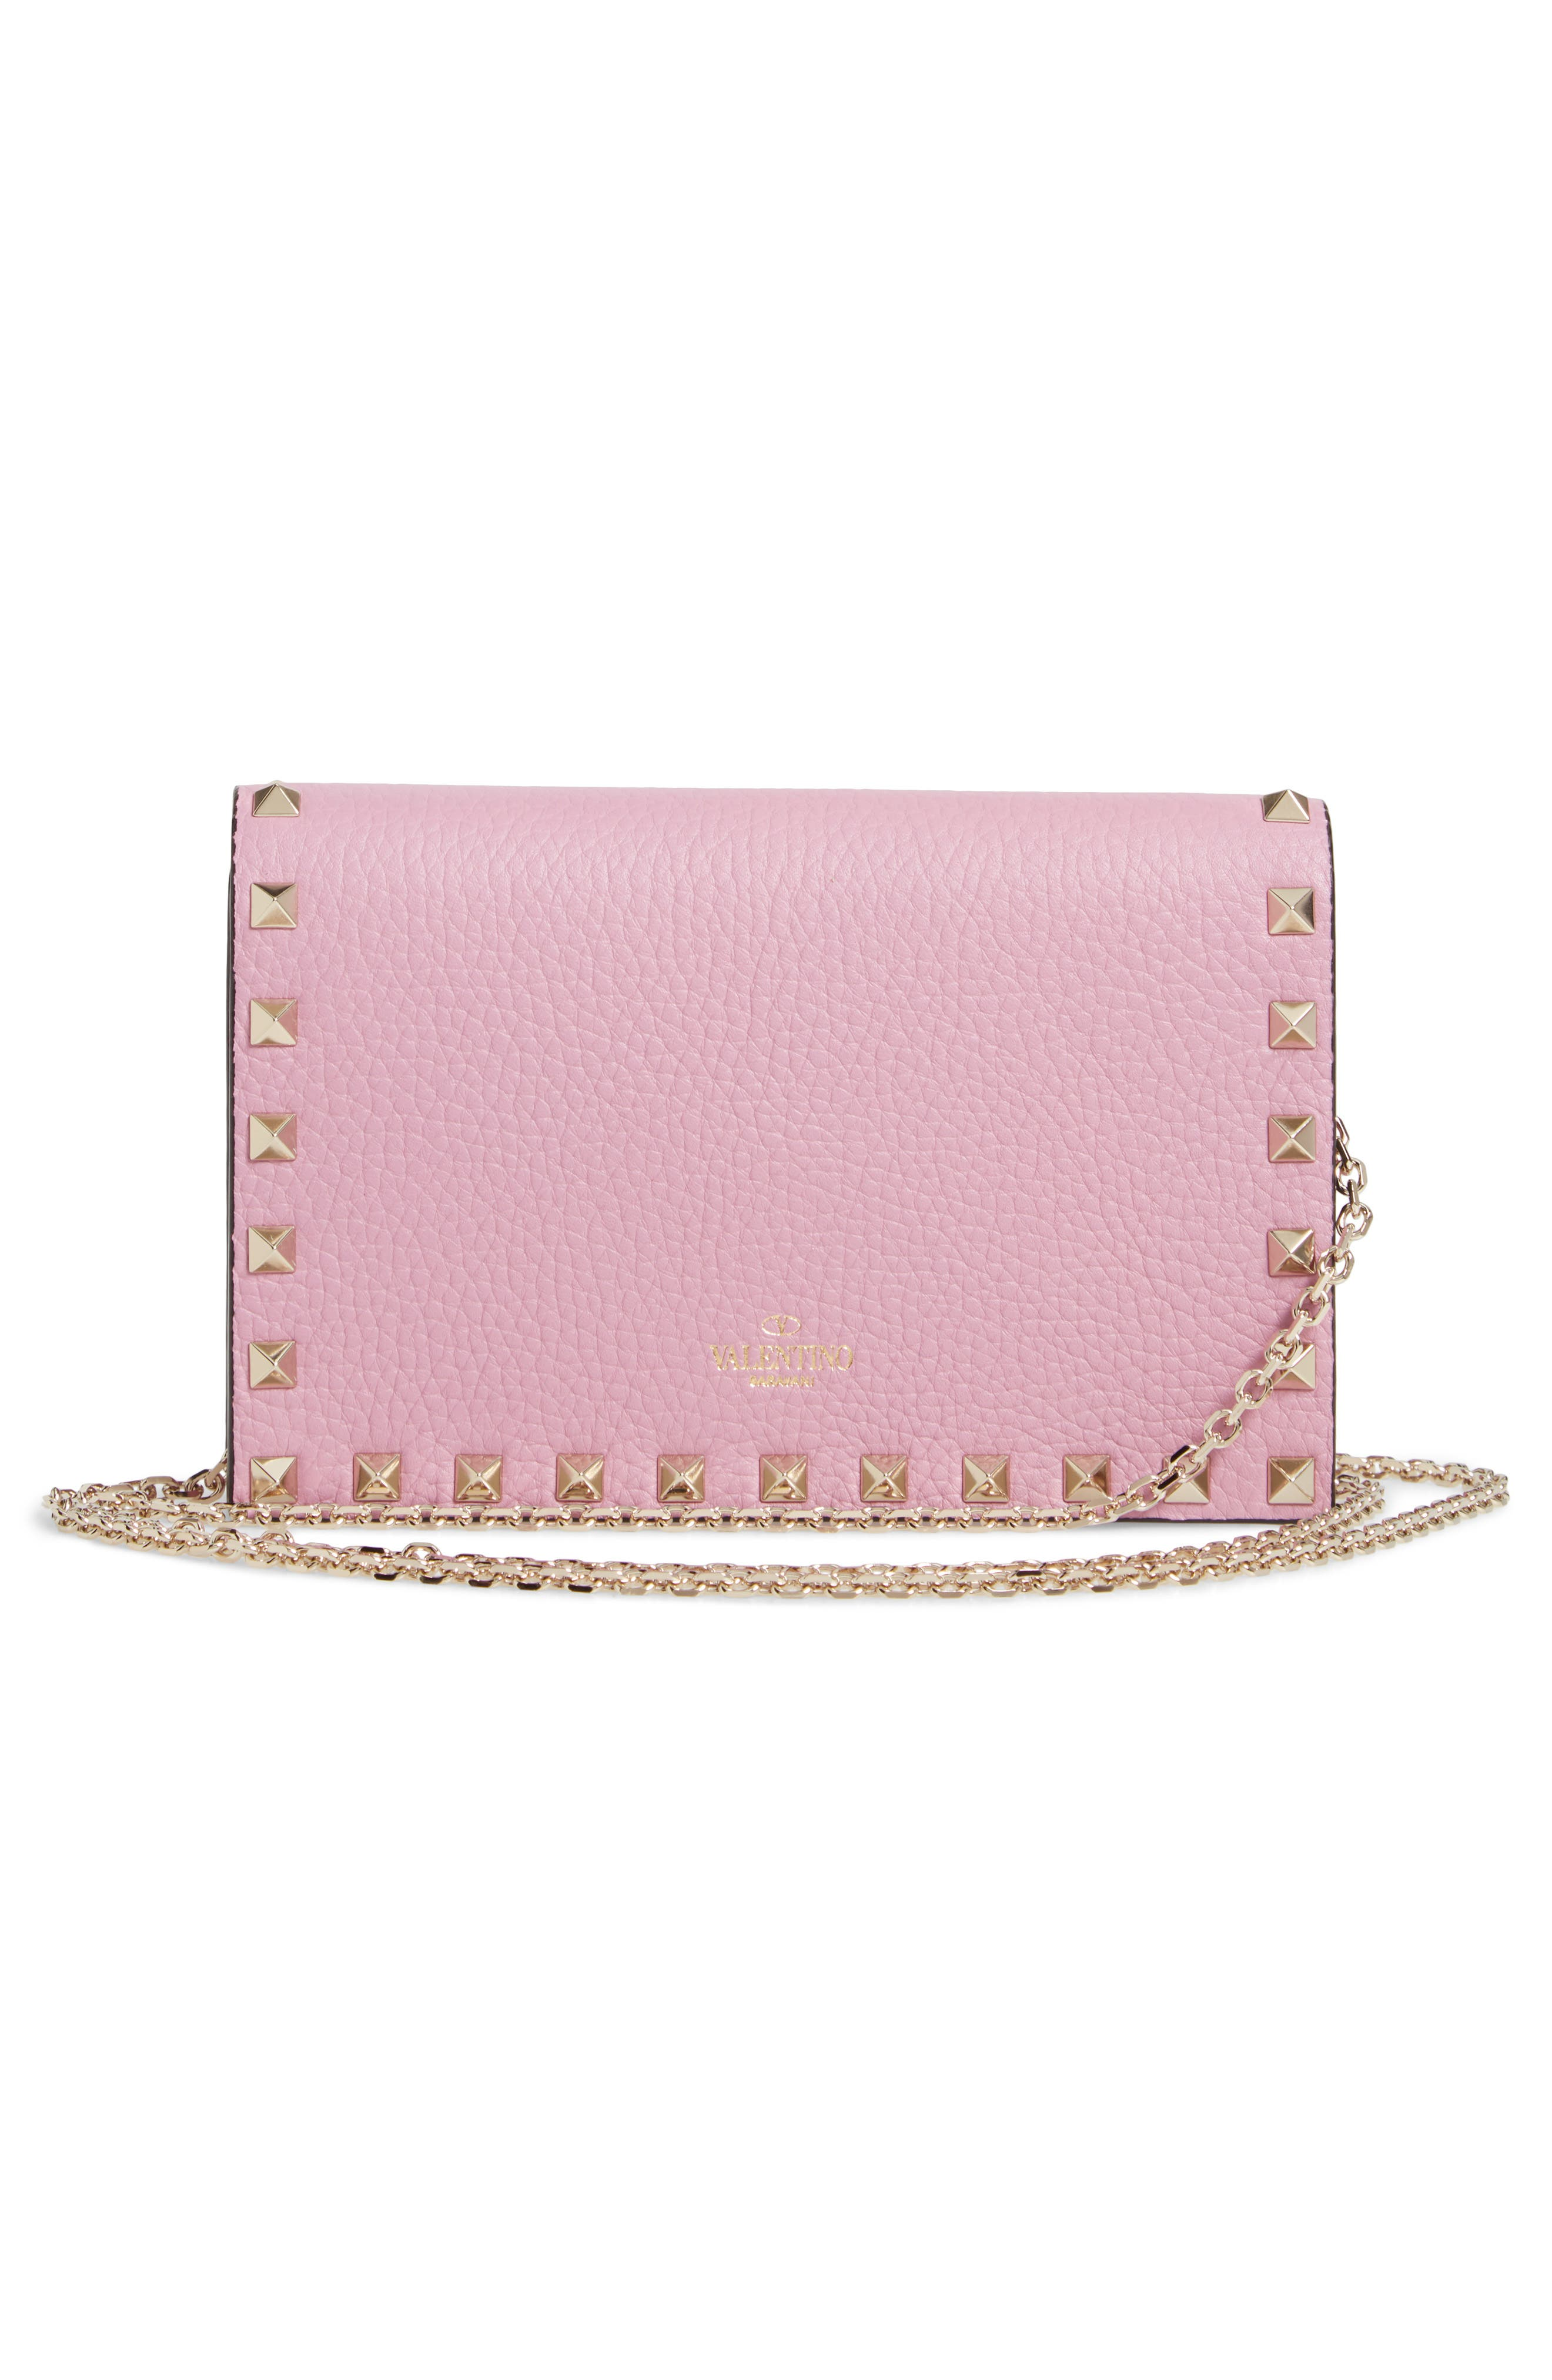 VALENTINO GARAVANI, Rockstud Calfskin Leather Envelope Pouch, Alternate thumbnail 3, color, GIACINTO